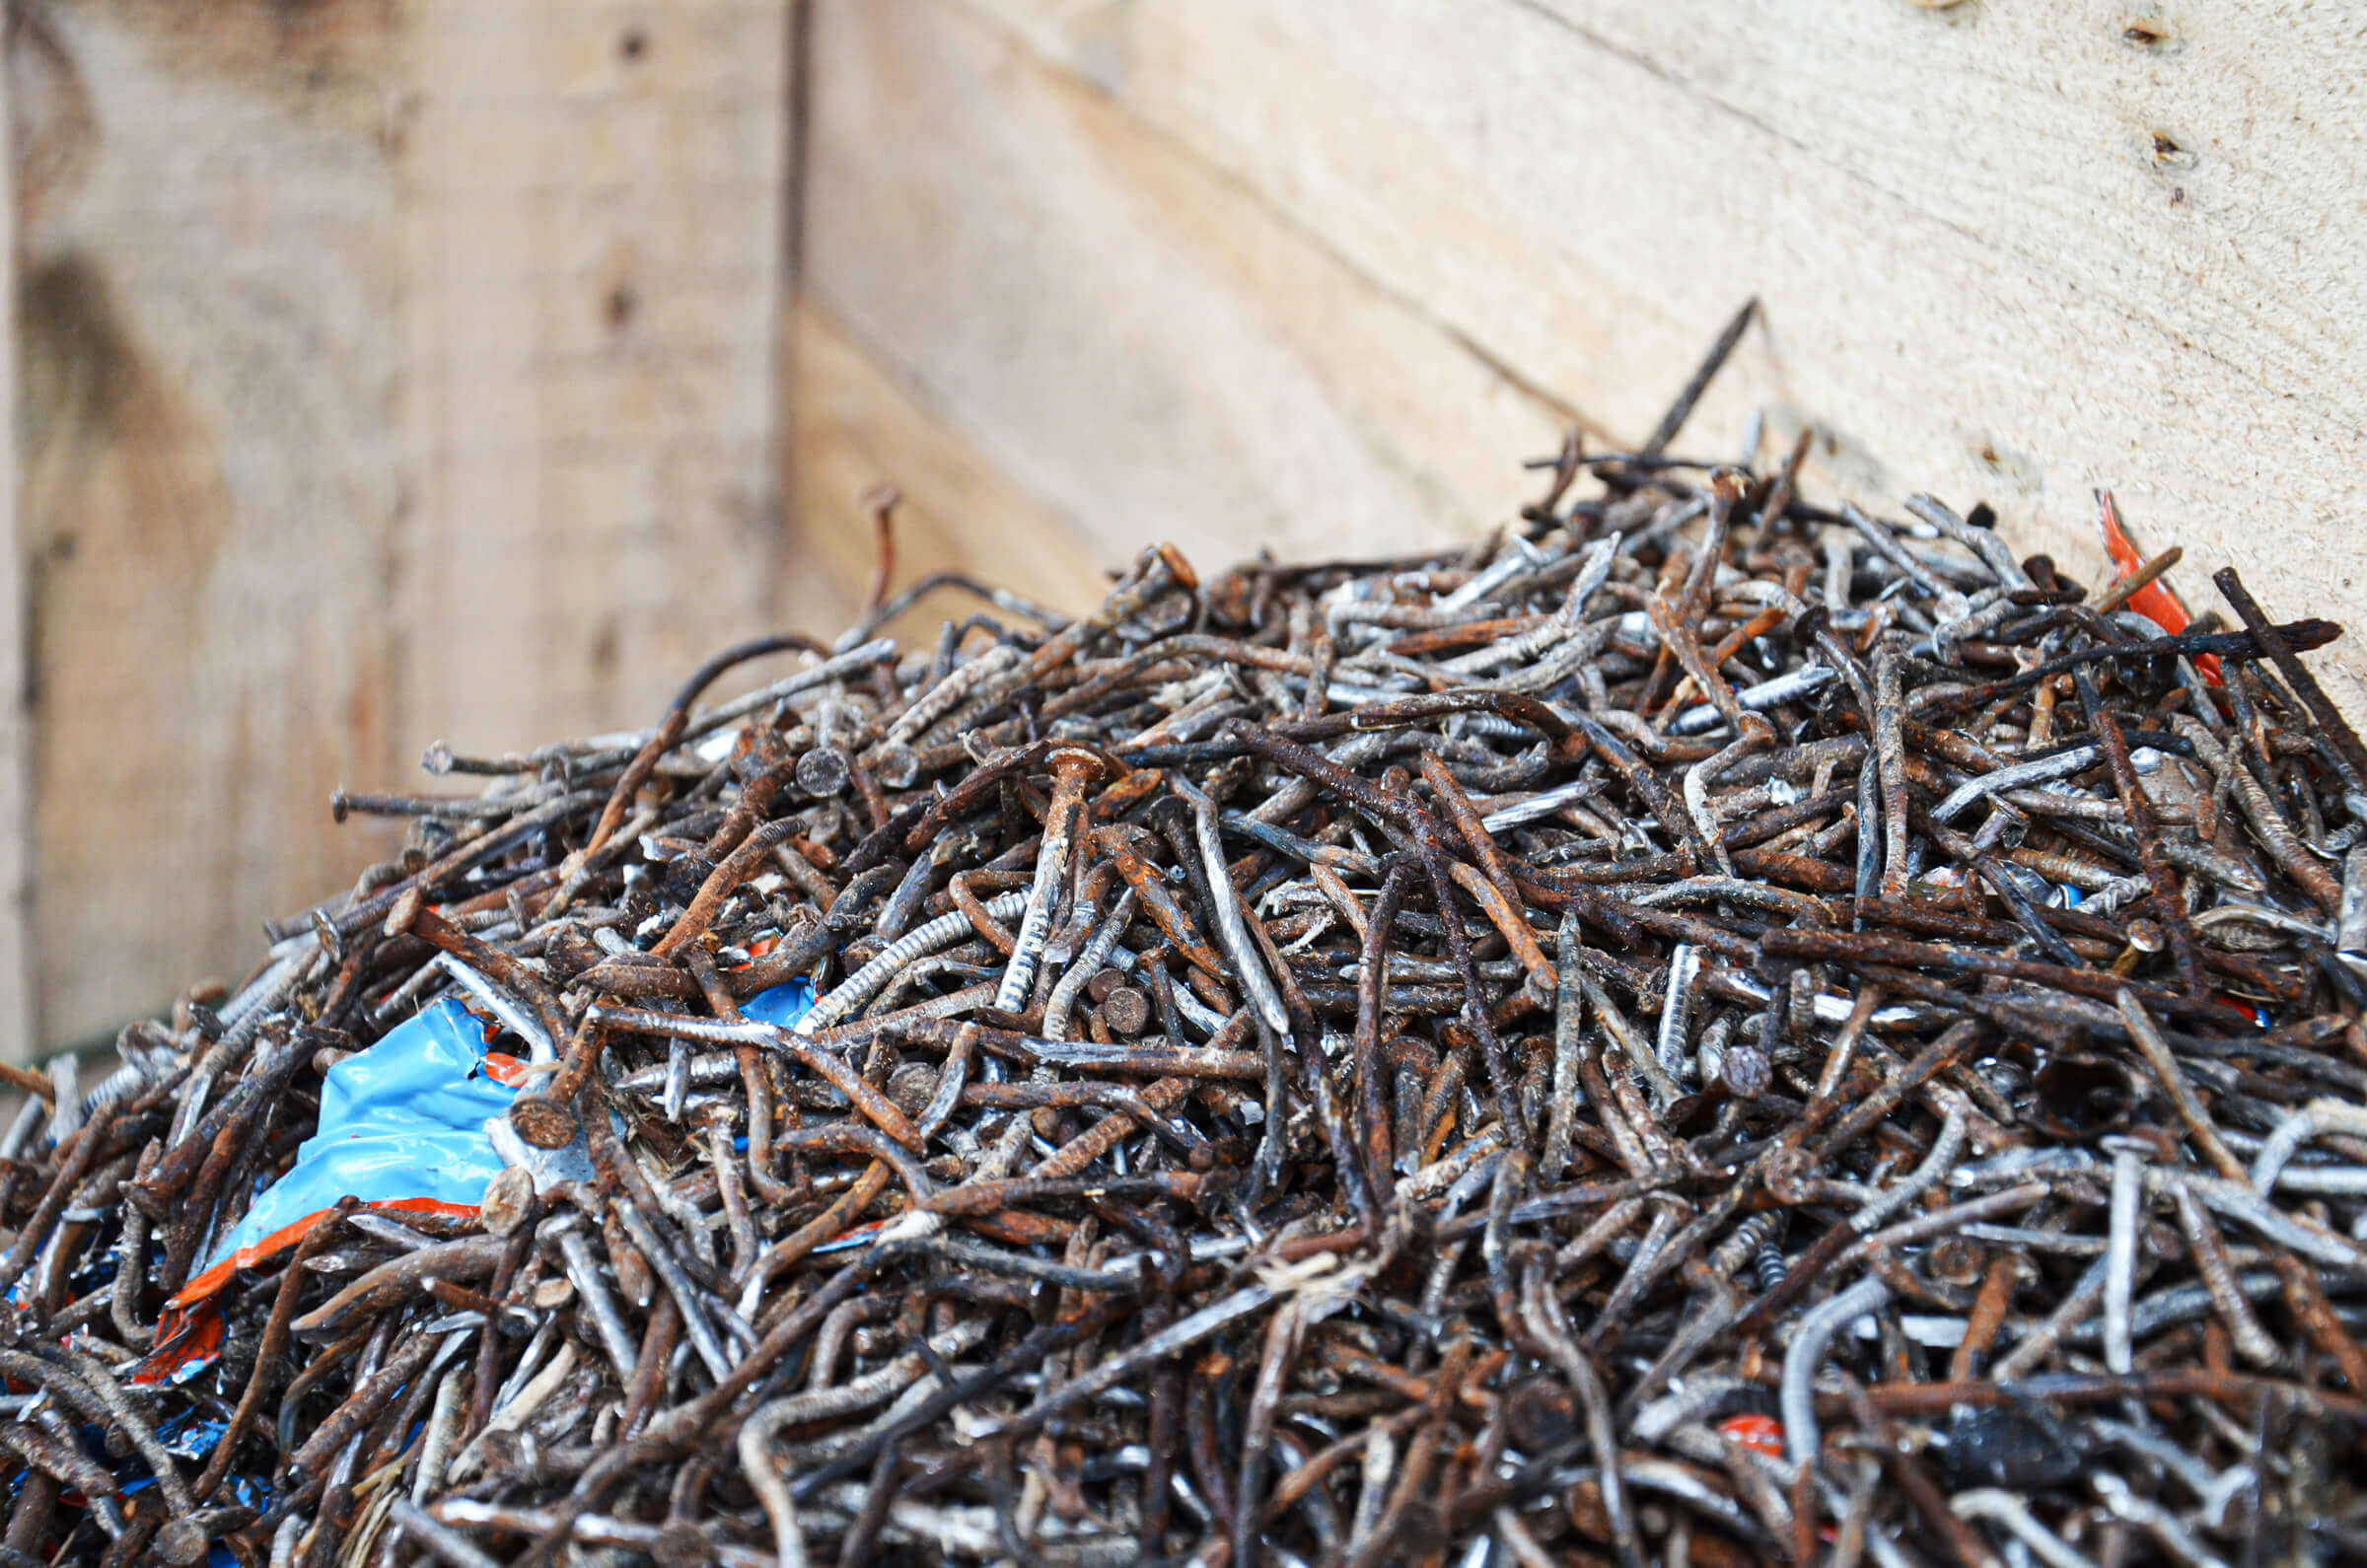 Nails, screws and metal separated from pallets